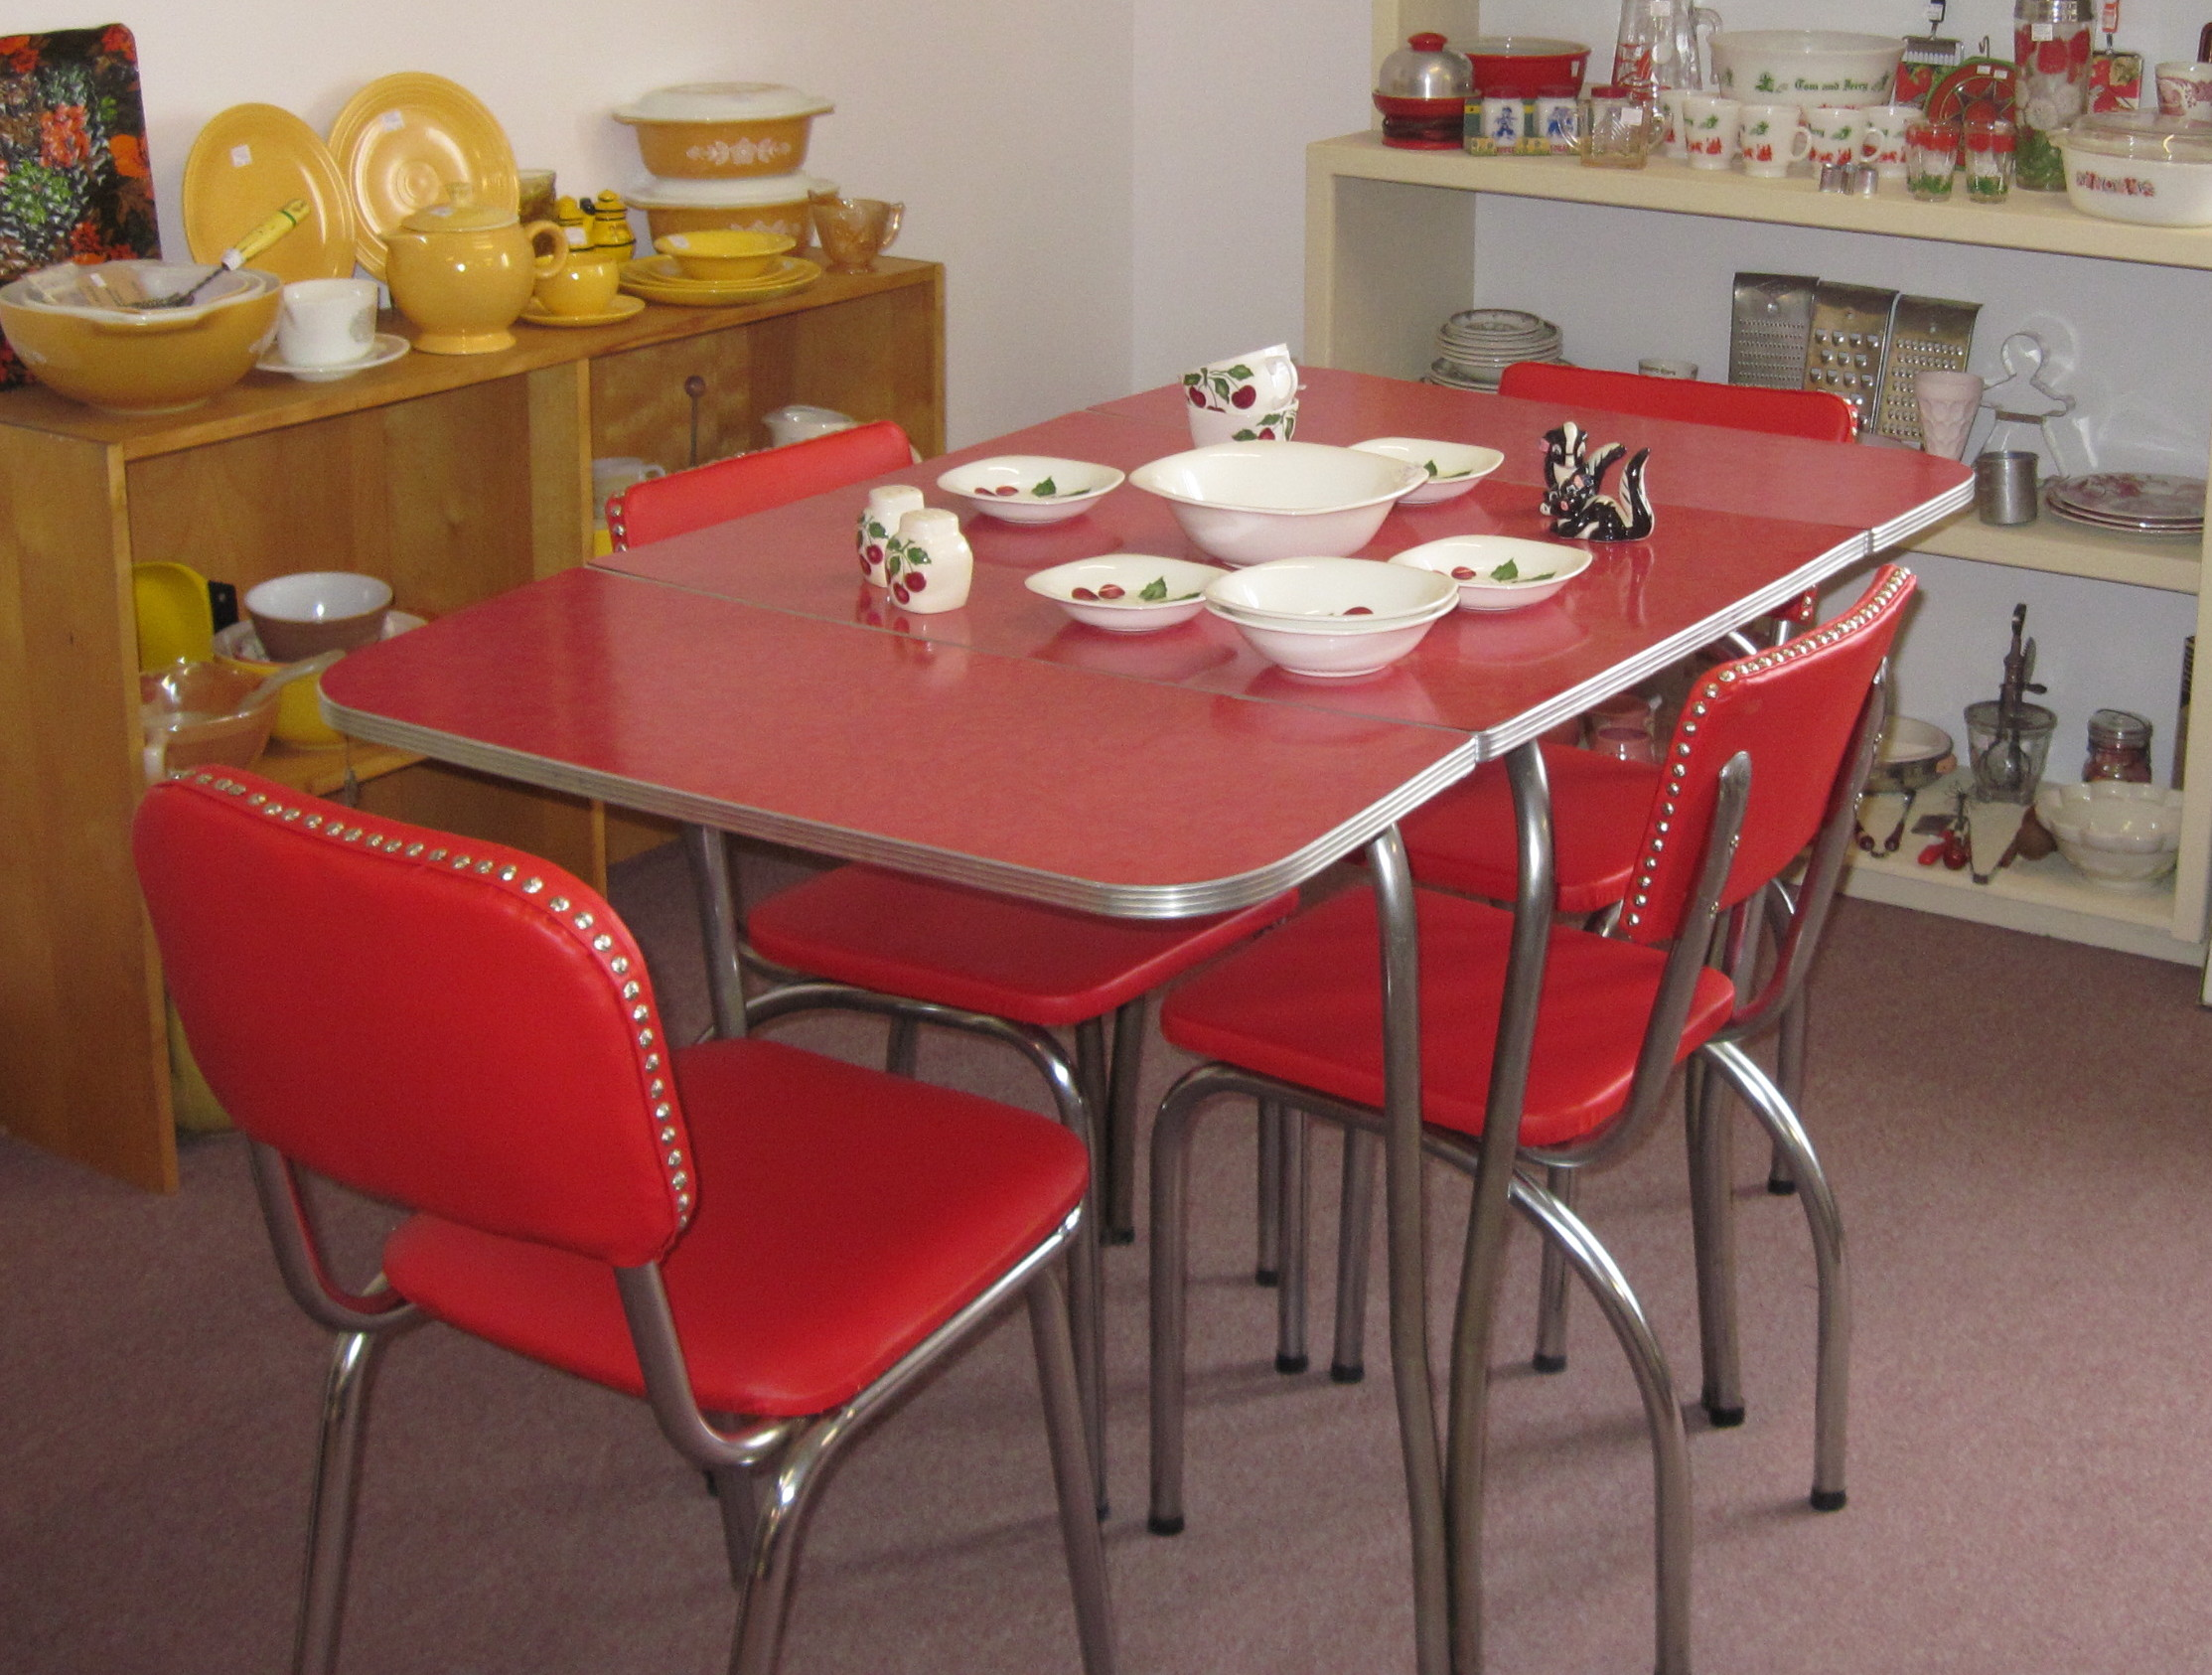 1950's red cracked ice dining set | fabfindsblog